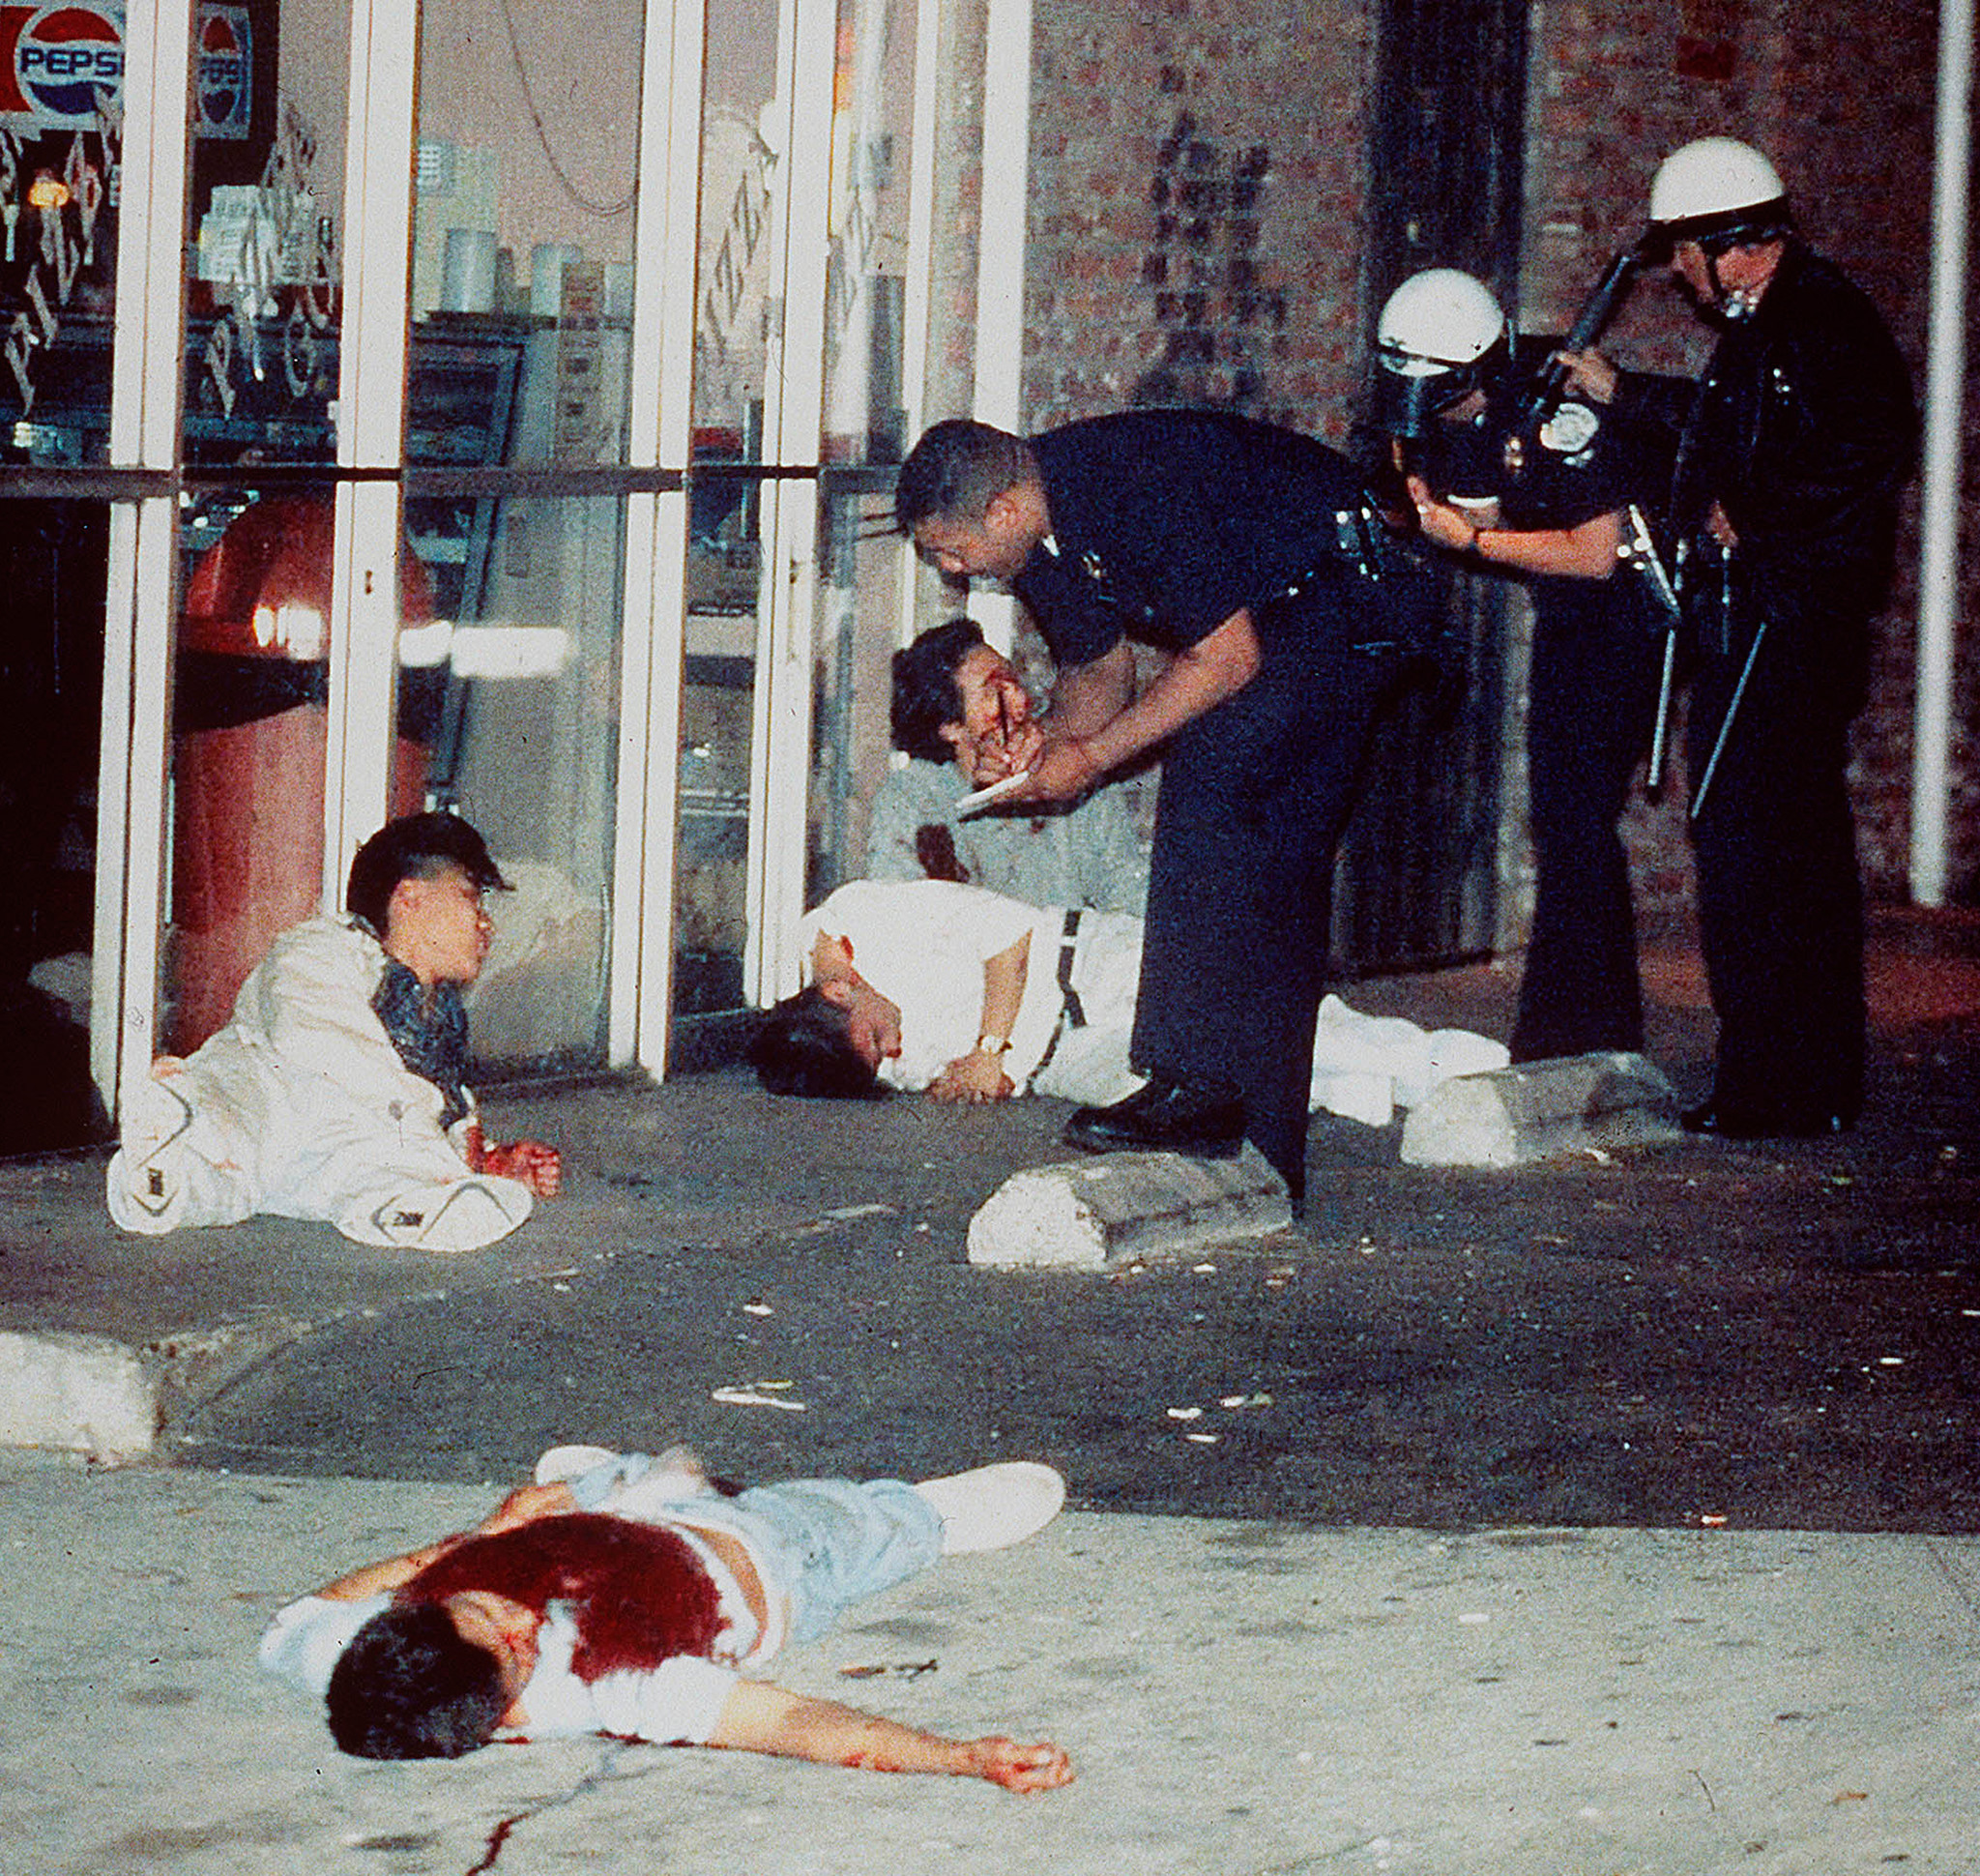 Edward Song Lee, 18, foreground, was shot to death and three other Koreans were injured in an exchange of gunfire with looters at 3rd Street and Hobart Boulevard in Koreatown on April 30, 1992. Police questioned the survivors of the attack who were shot while trying to protect a Korean-owned pizza parlor.